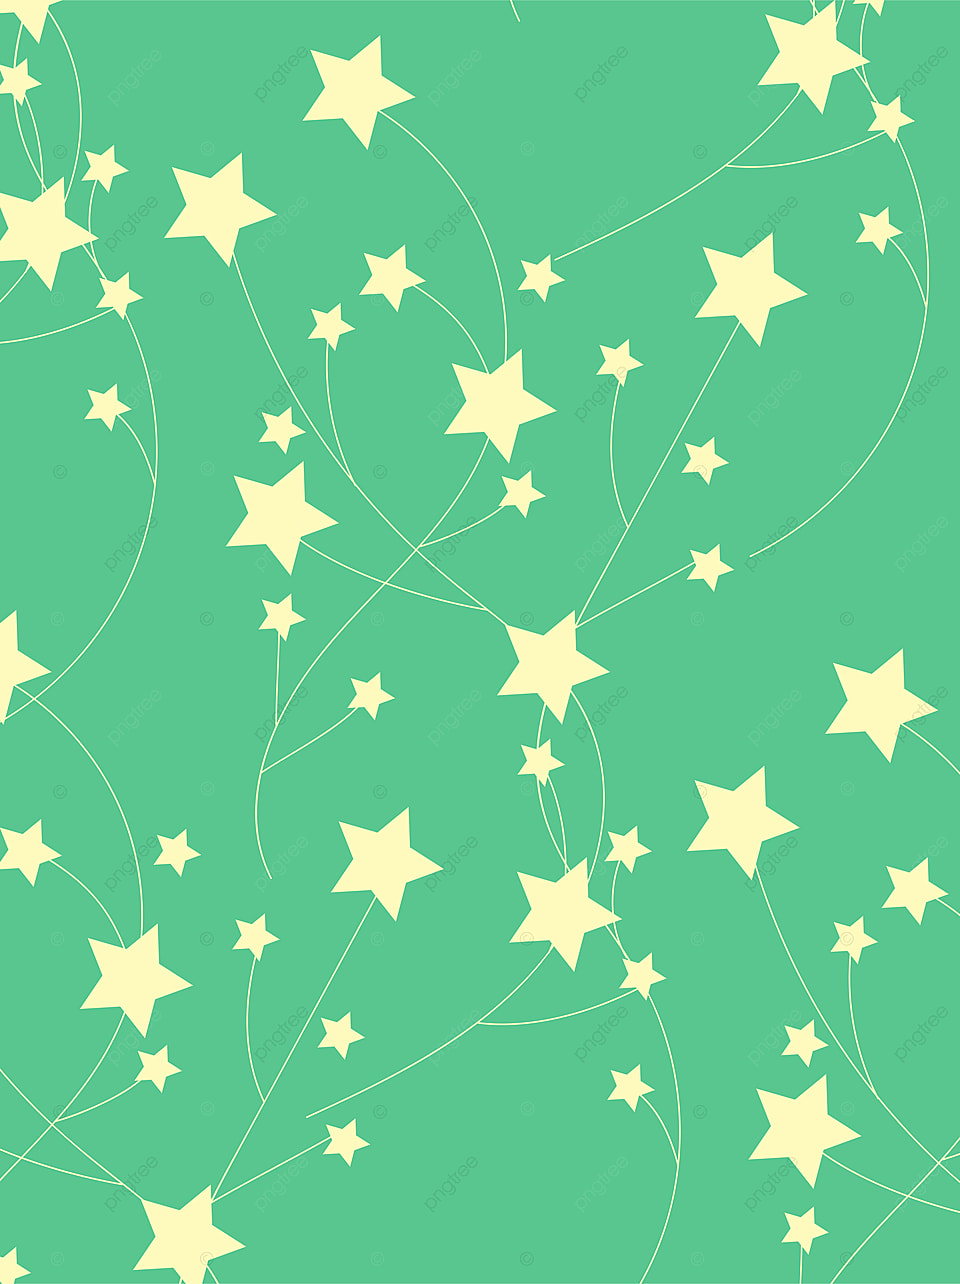 Background Bintang Png : background, bintang, Creative, Green, Stars, Yellow, Background,, Creativity,, Green,, Background, Image, Download